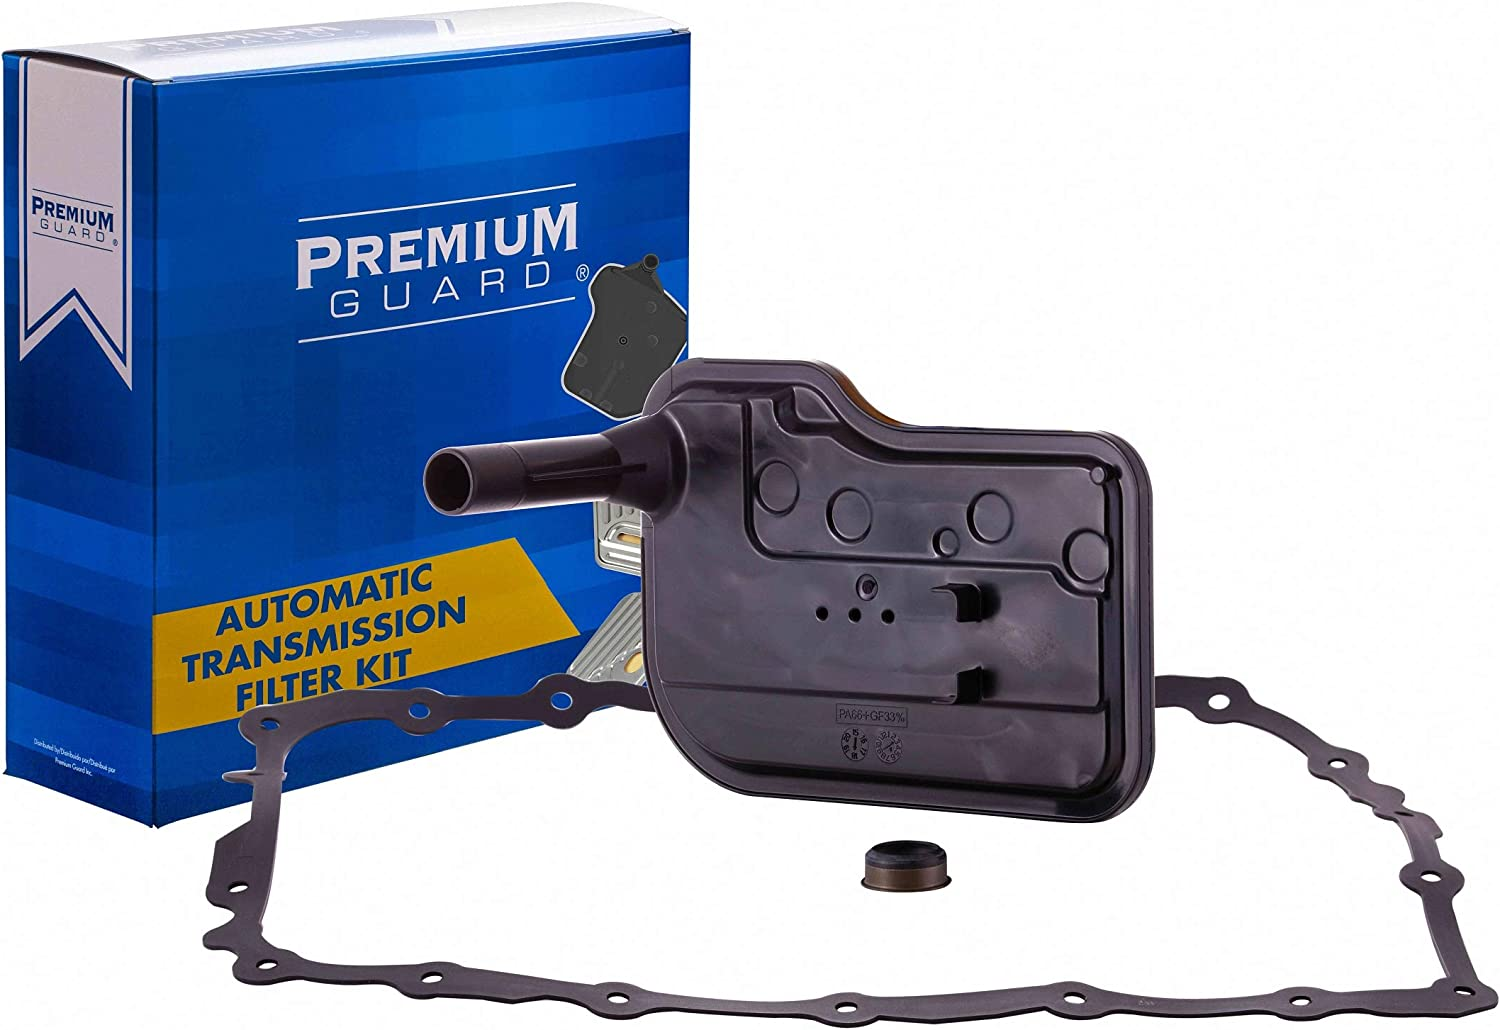 PG Transmission Filter Las Vegas Mall Recommended Kit PT99422 Fits 2013-15 Cadillac ATS